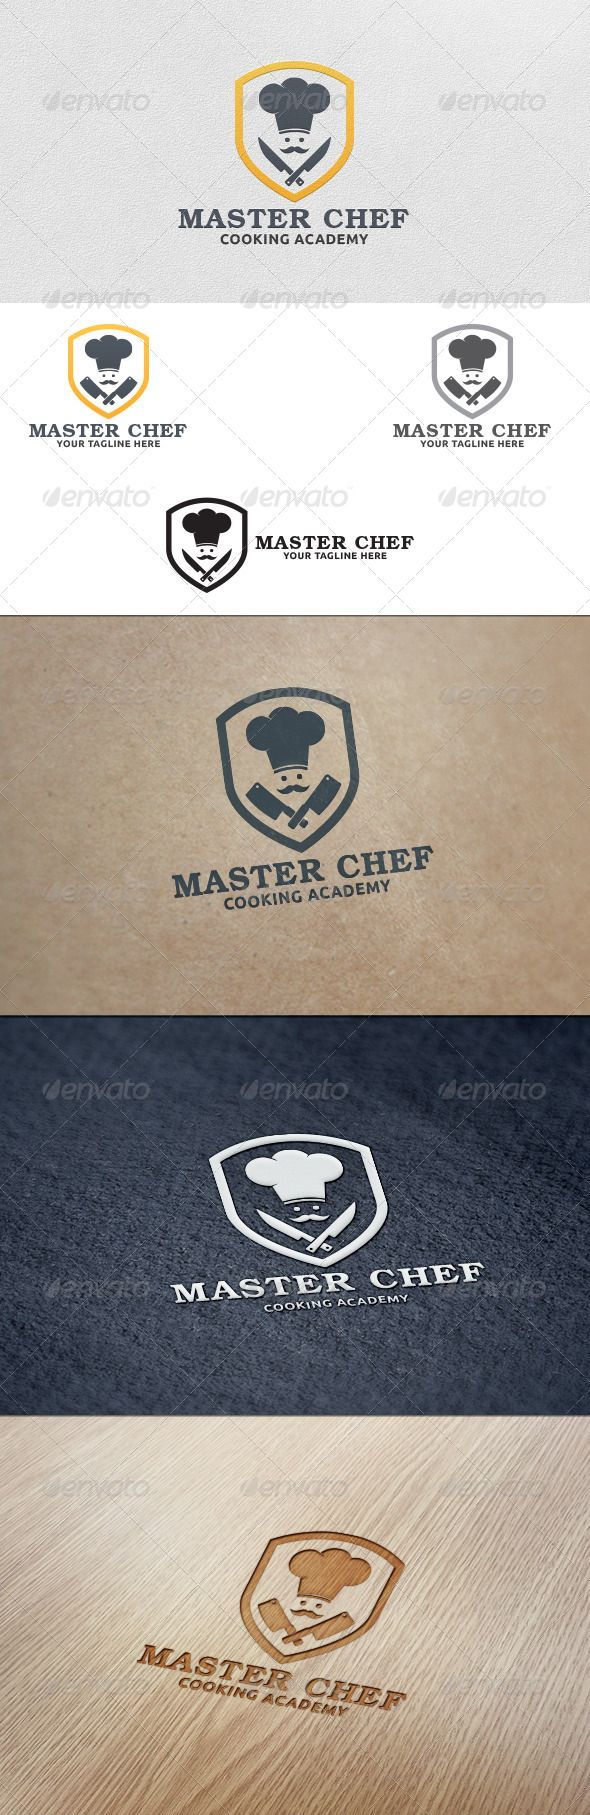 Master Chef - Logo Template